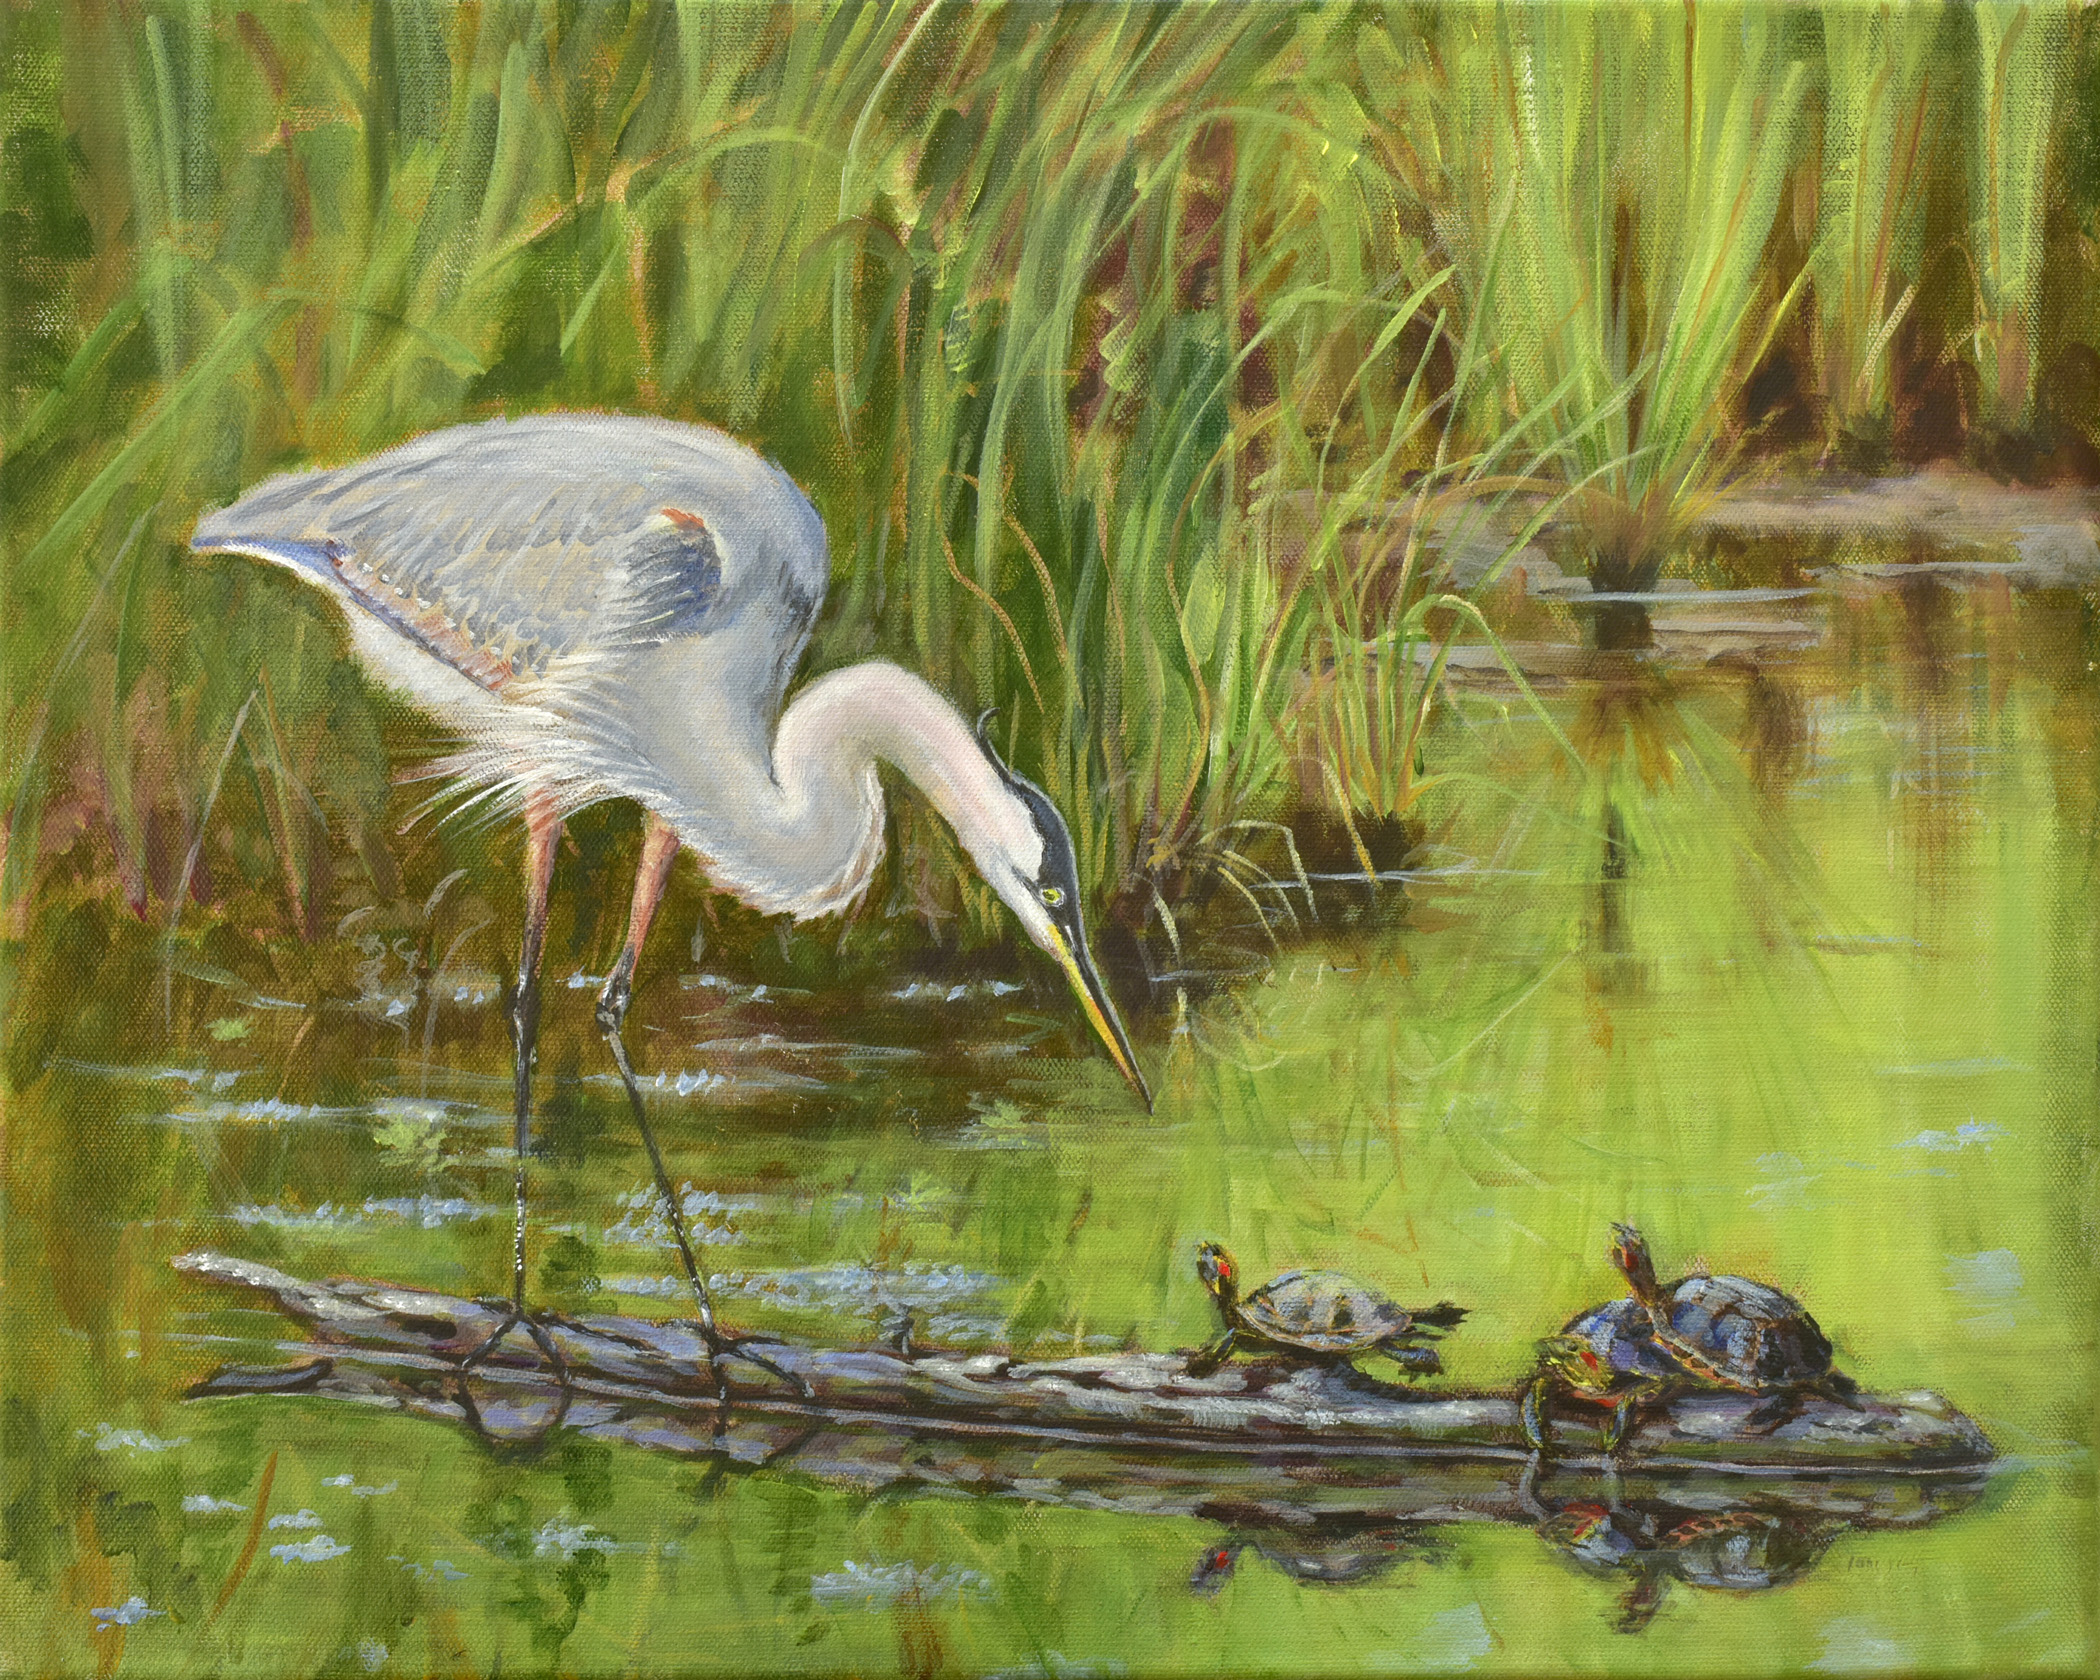 Great blue heron, turtles, pond, grasses, wildlife, Chesapeake bay